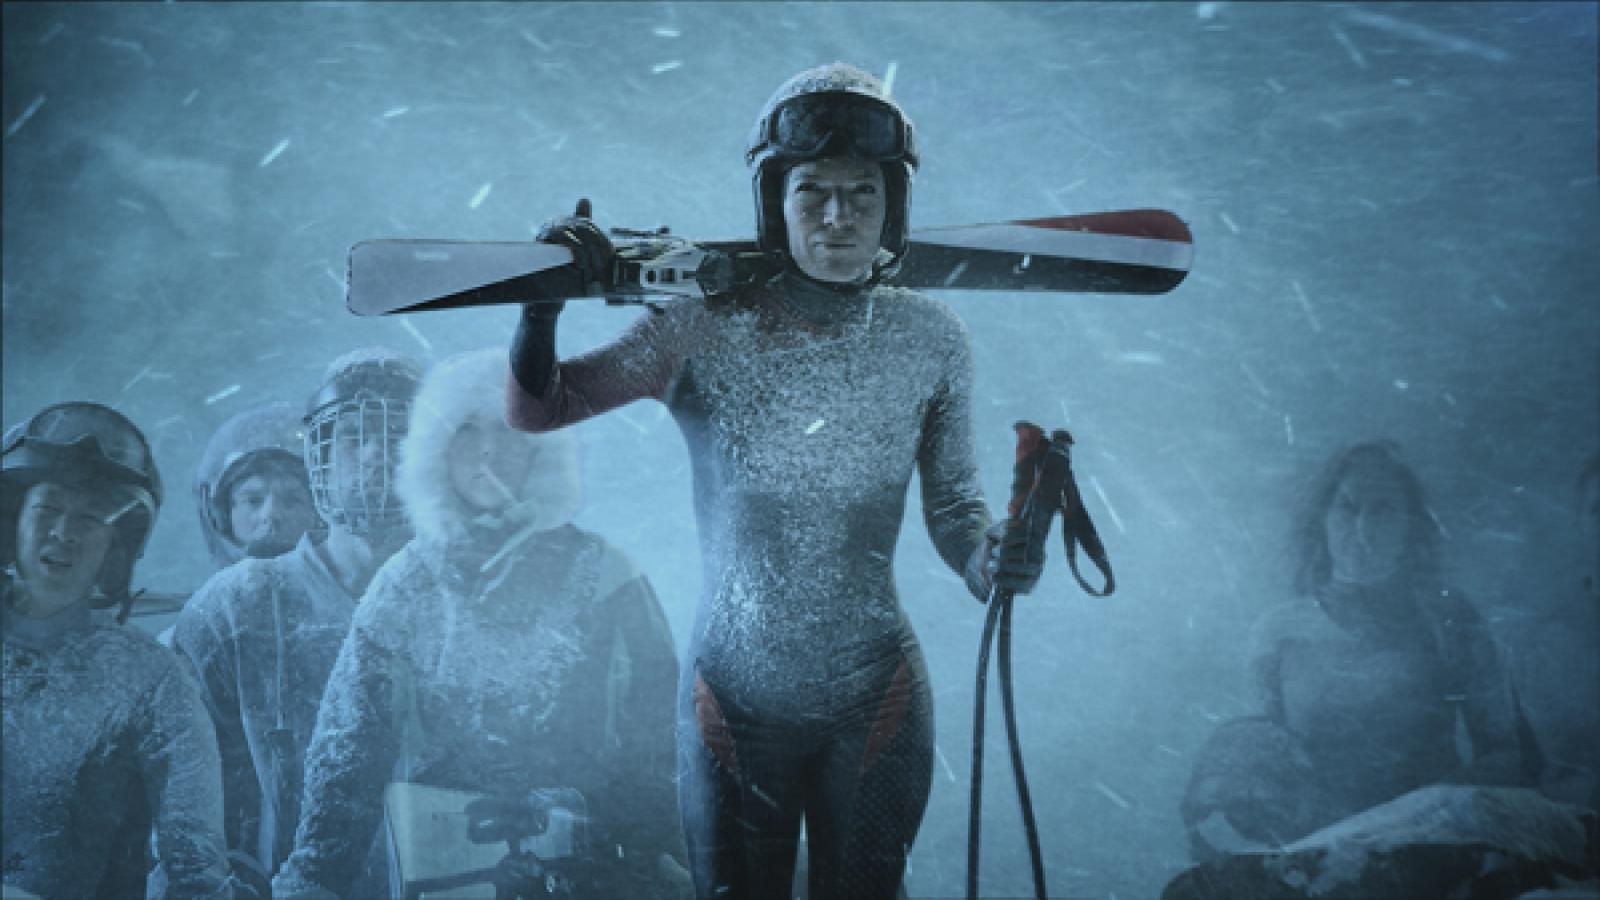 BBC Winter Olympics – Nature